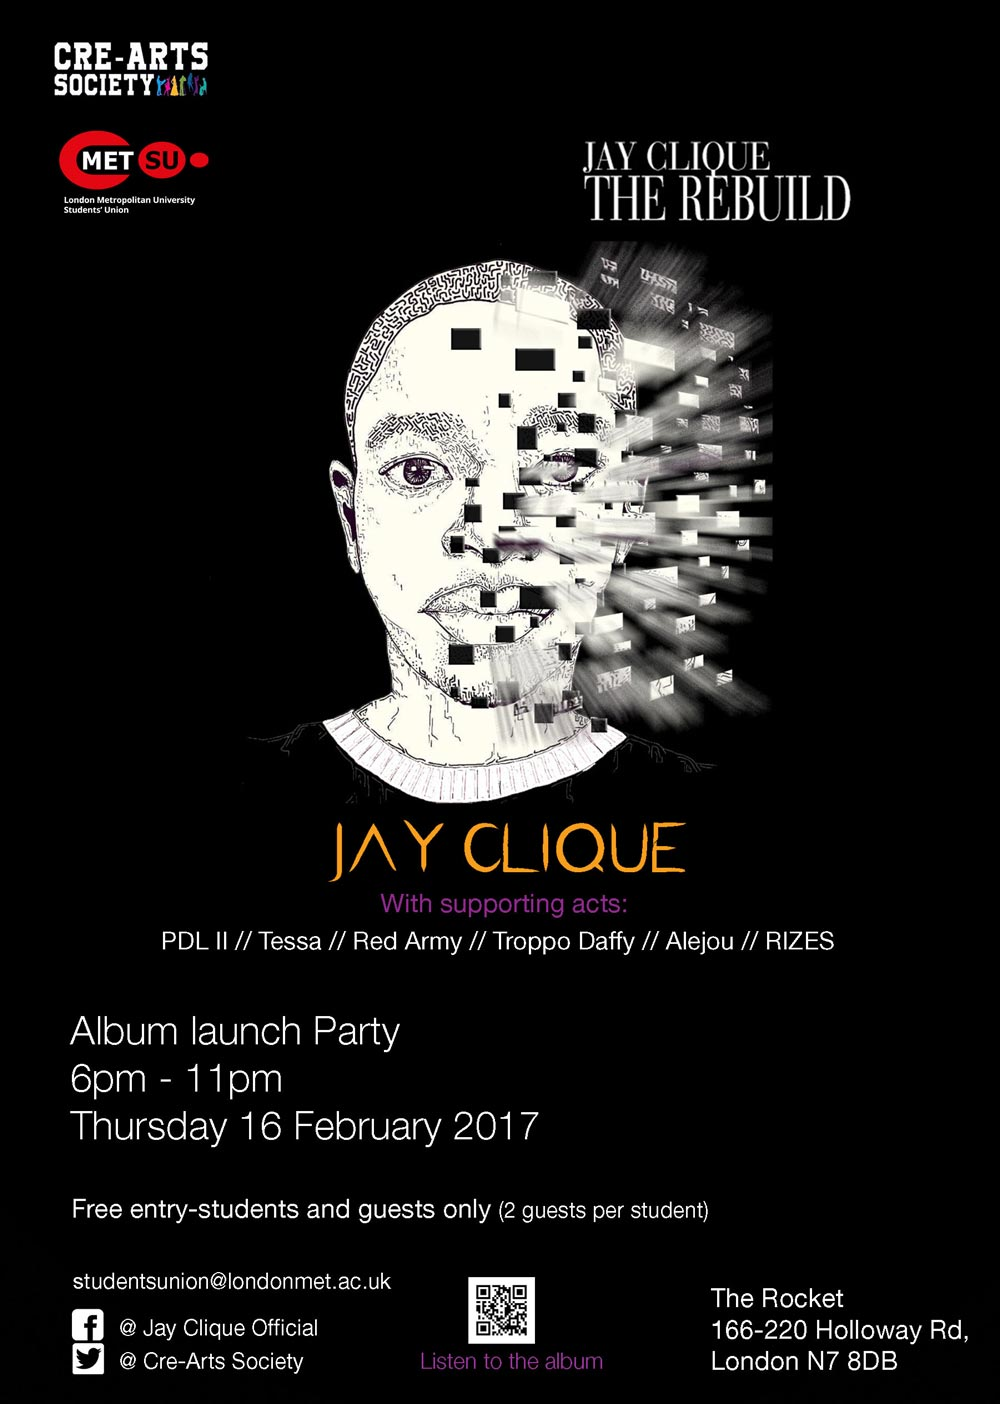 Jay Clique - The Rebulid - Launch Party at The Rocket, London - performances